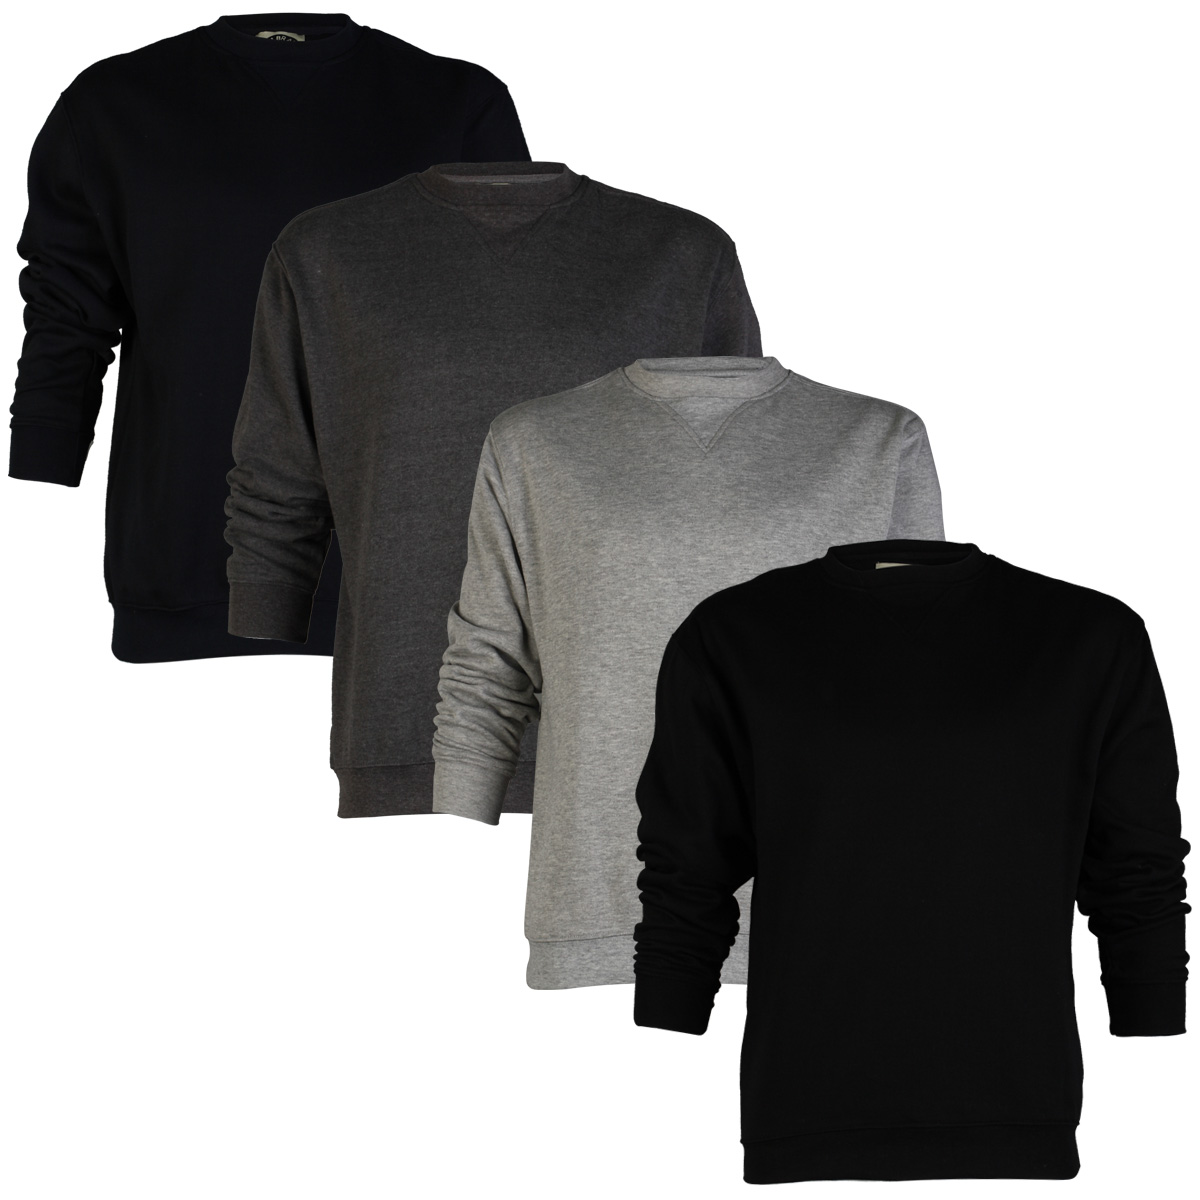 eb475a01d7 Image is loading MENS-KAM-JEANS-K502S-PLAIN-CREW-NECK-SWEATER-